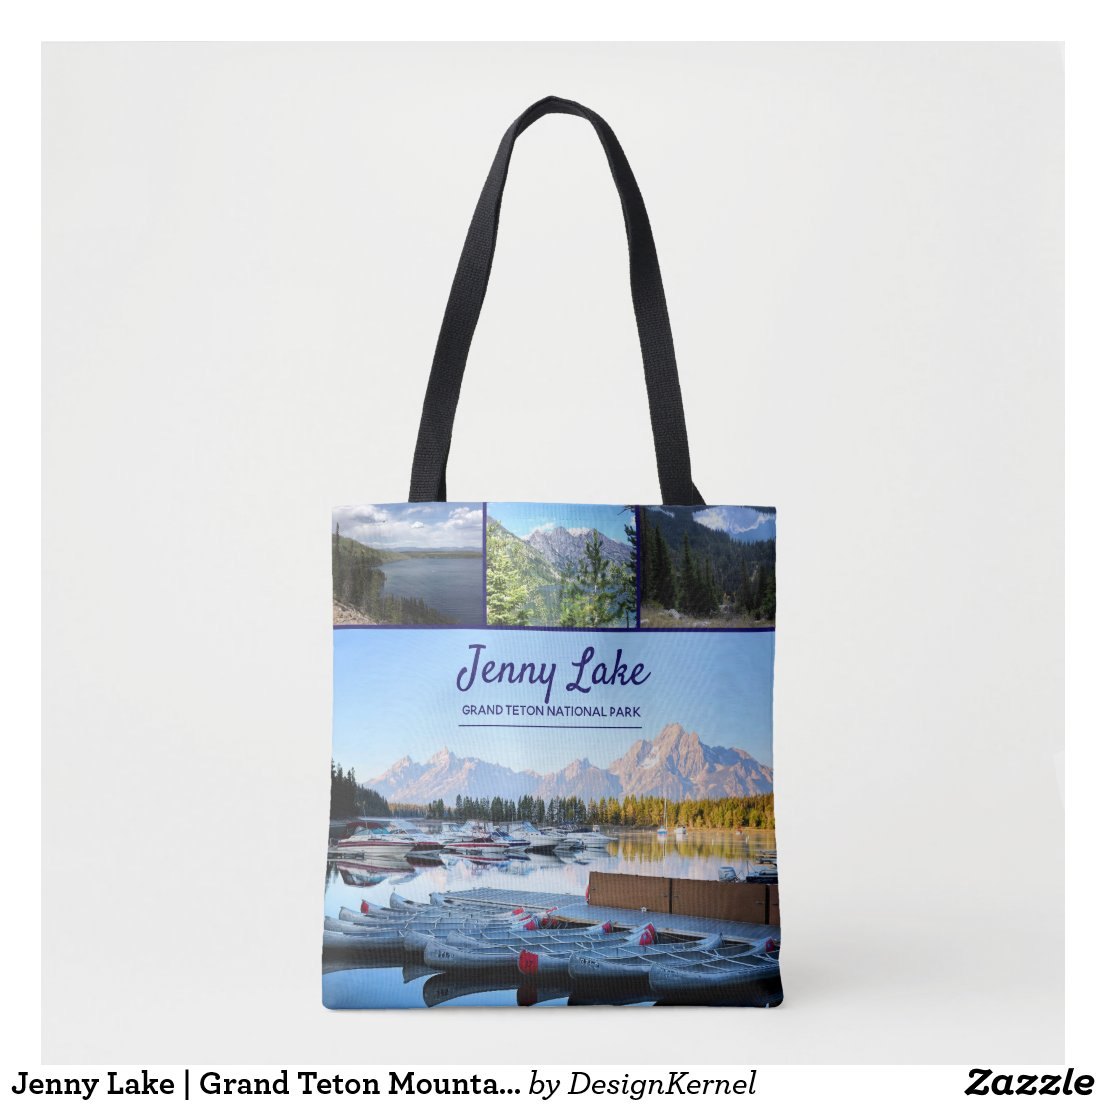 Jenny Lake | Grand Teton Mountains Tote Bag